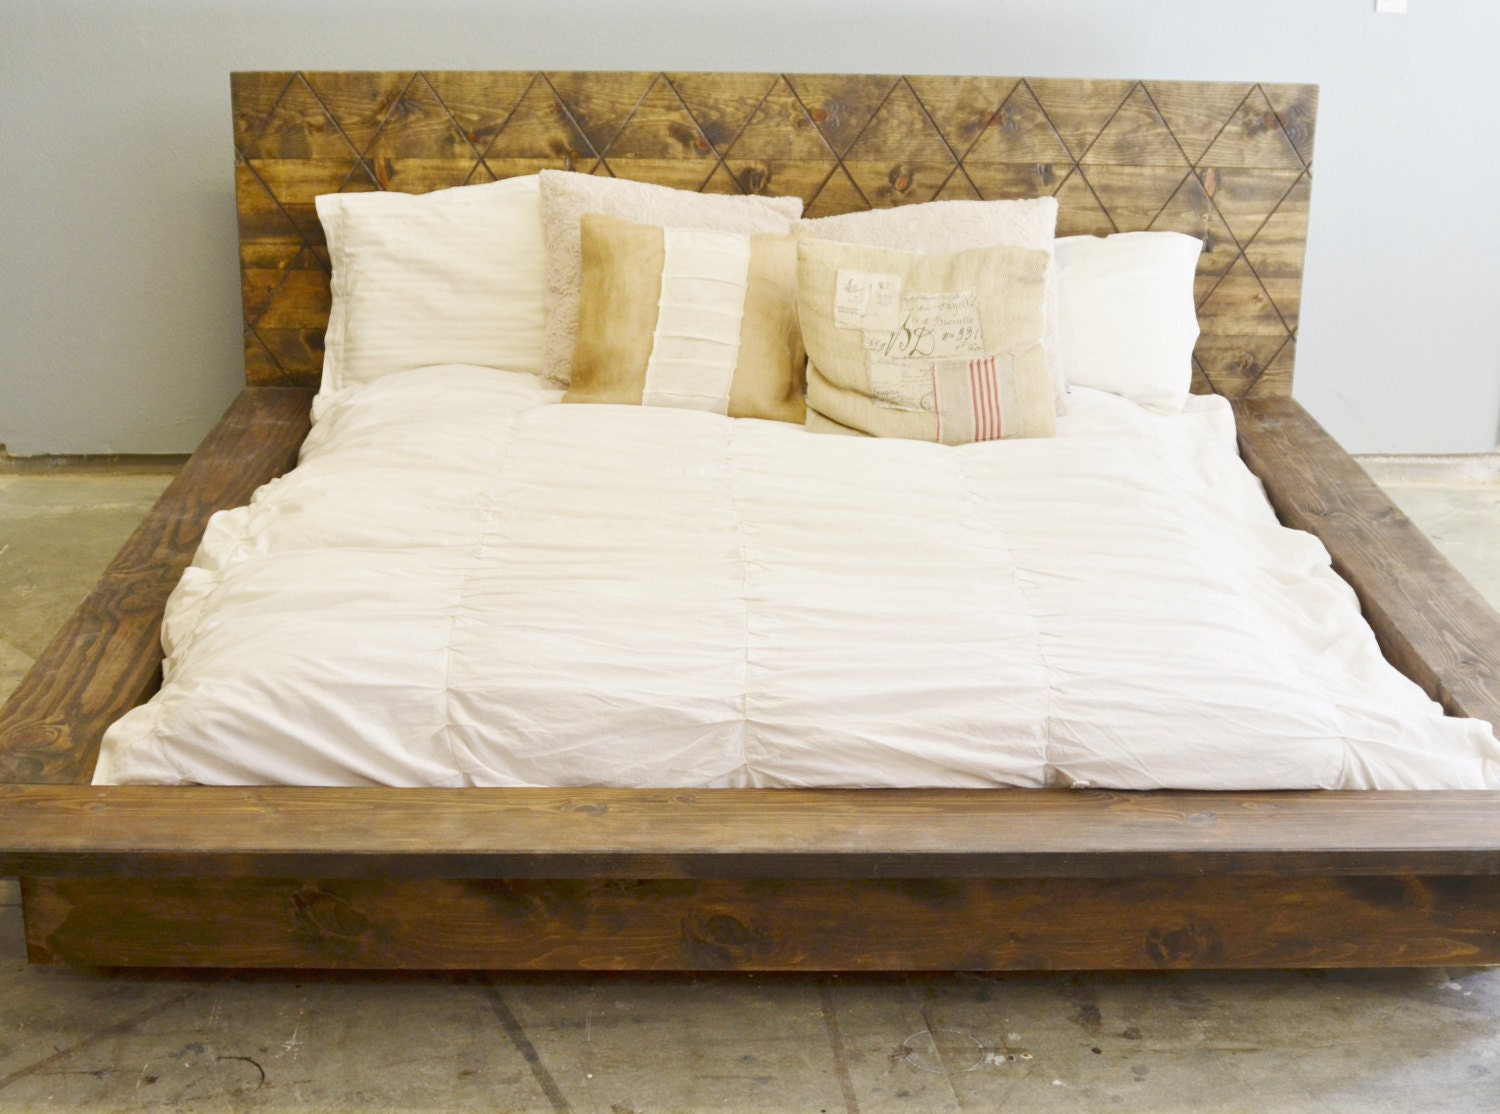 rustic wood platform bed frame with patterned headboard quilmes zoom